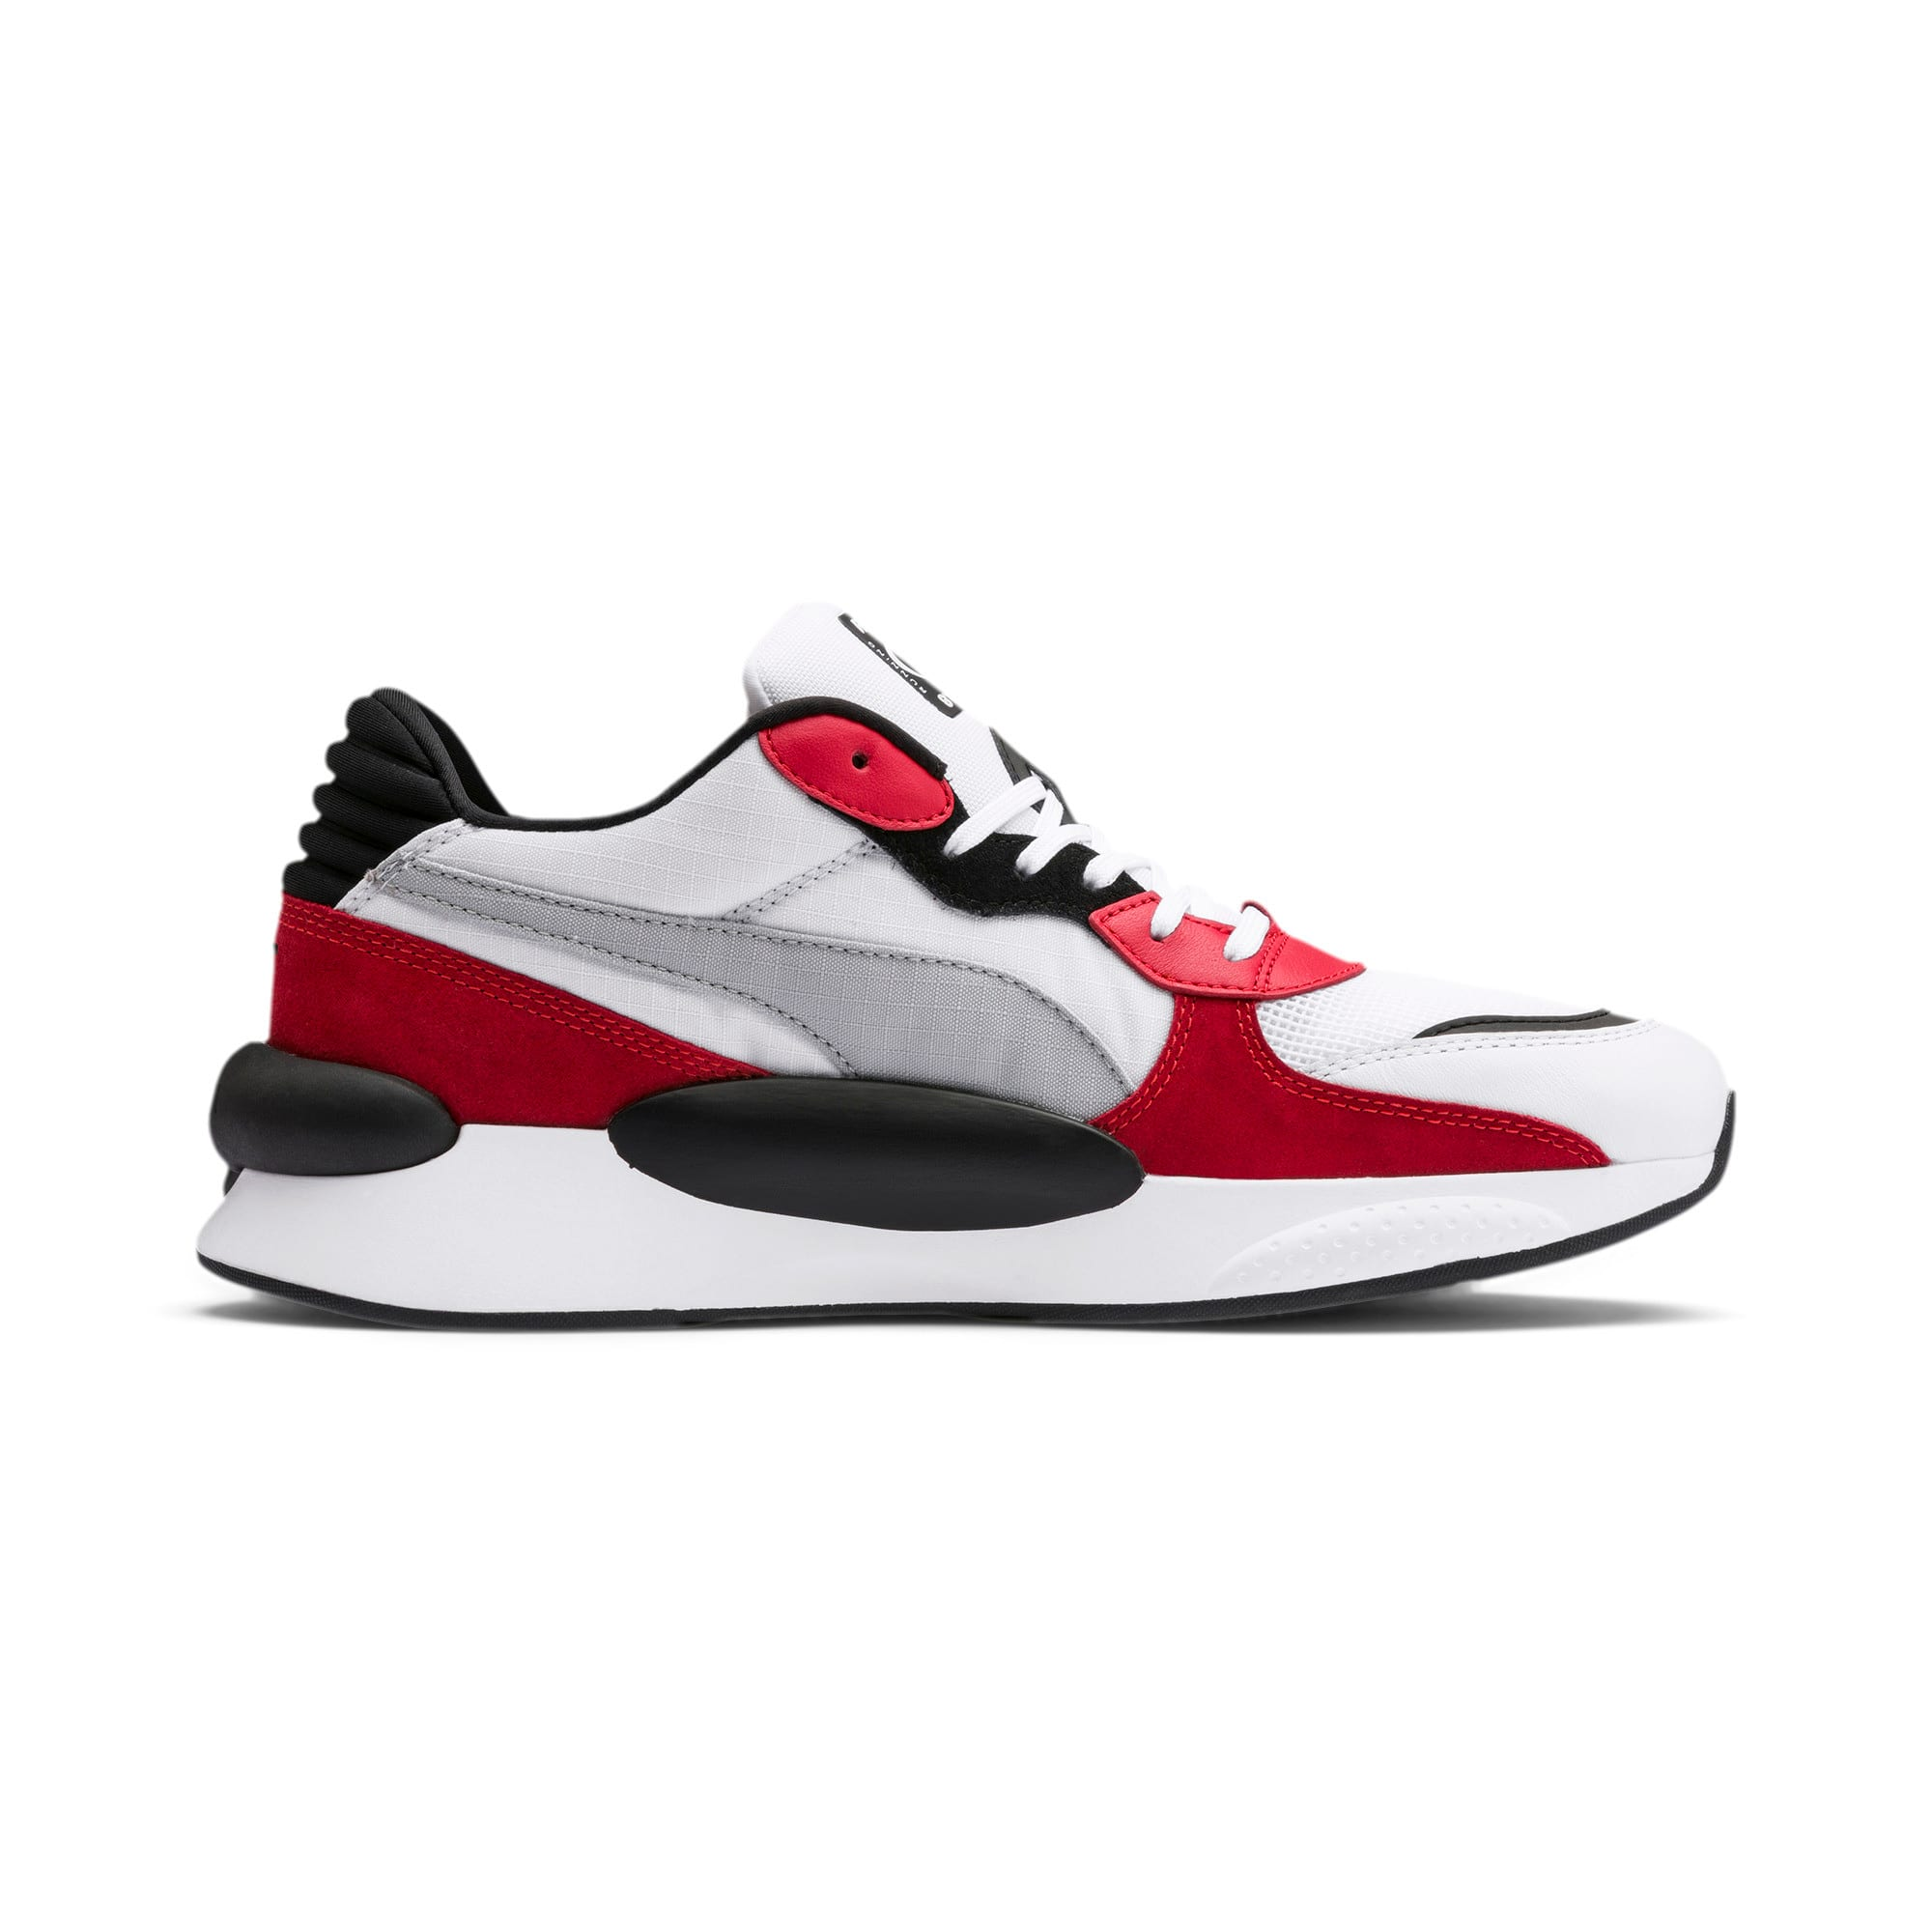 Thumbnail 6 of RS 9.8 Space sportschoenen, Puma White-High Risk Red, medium